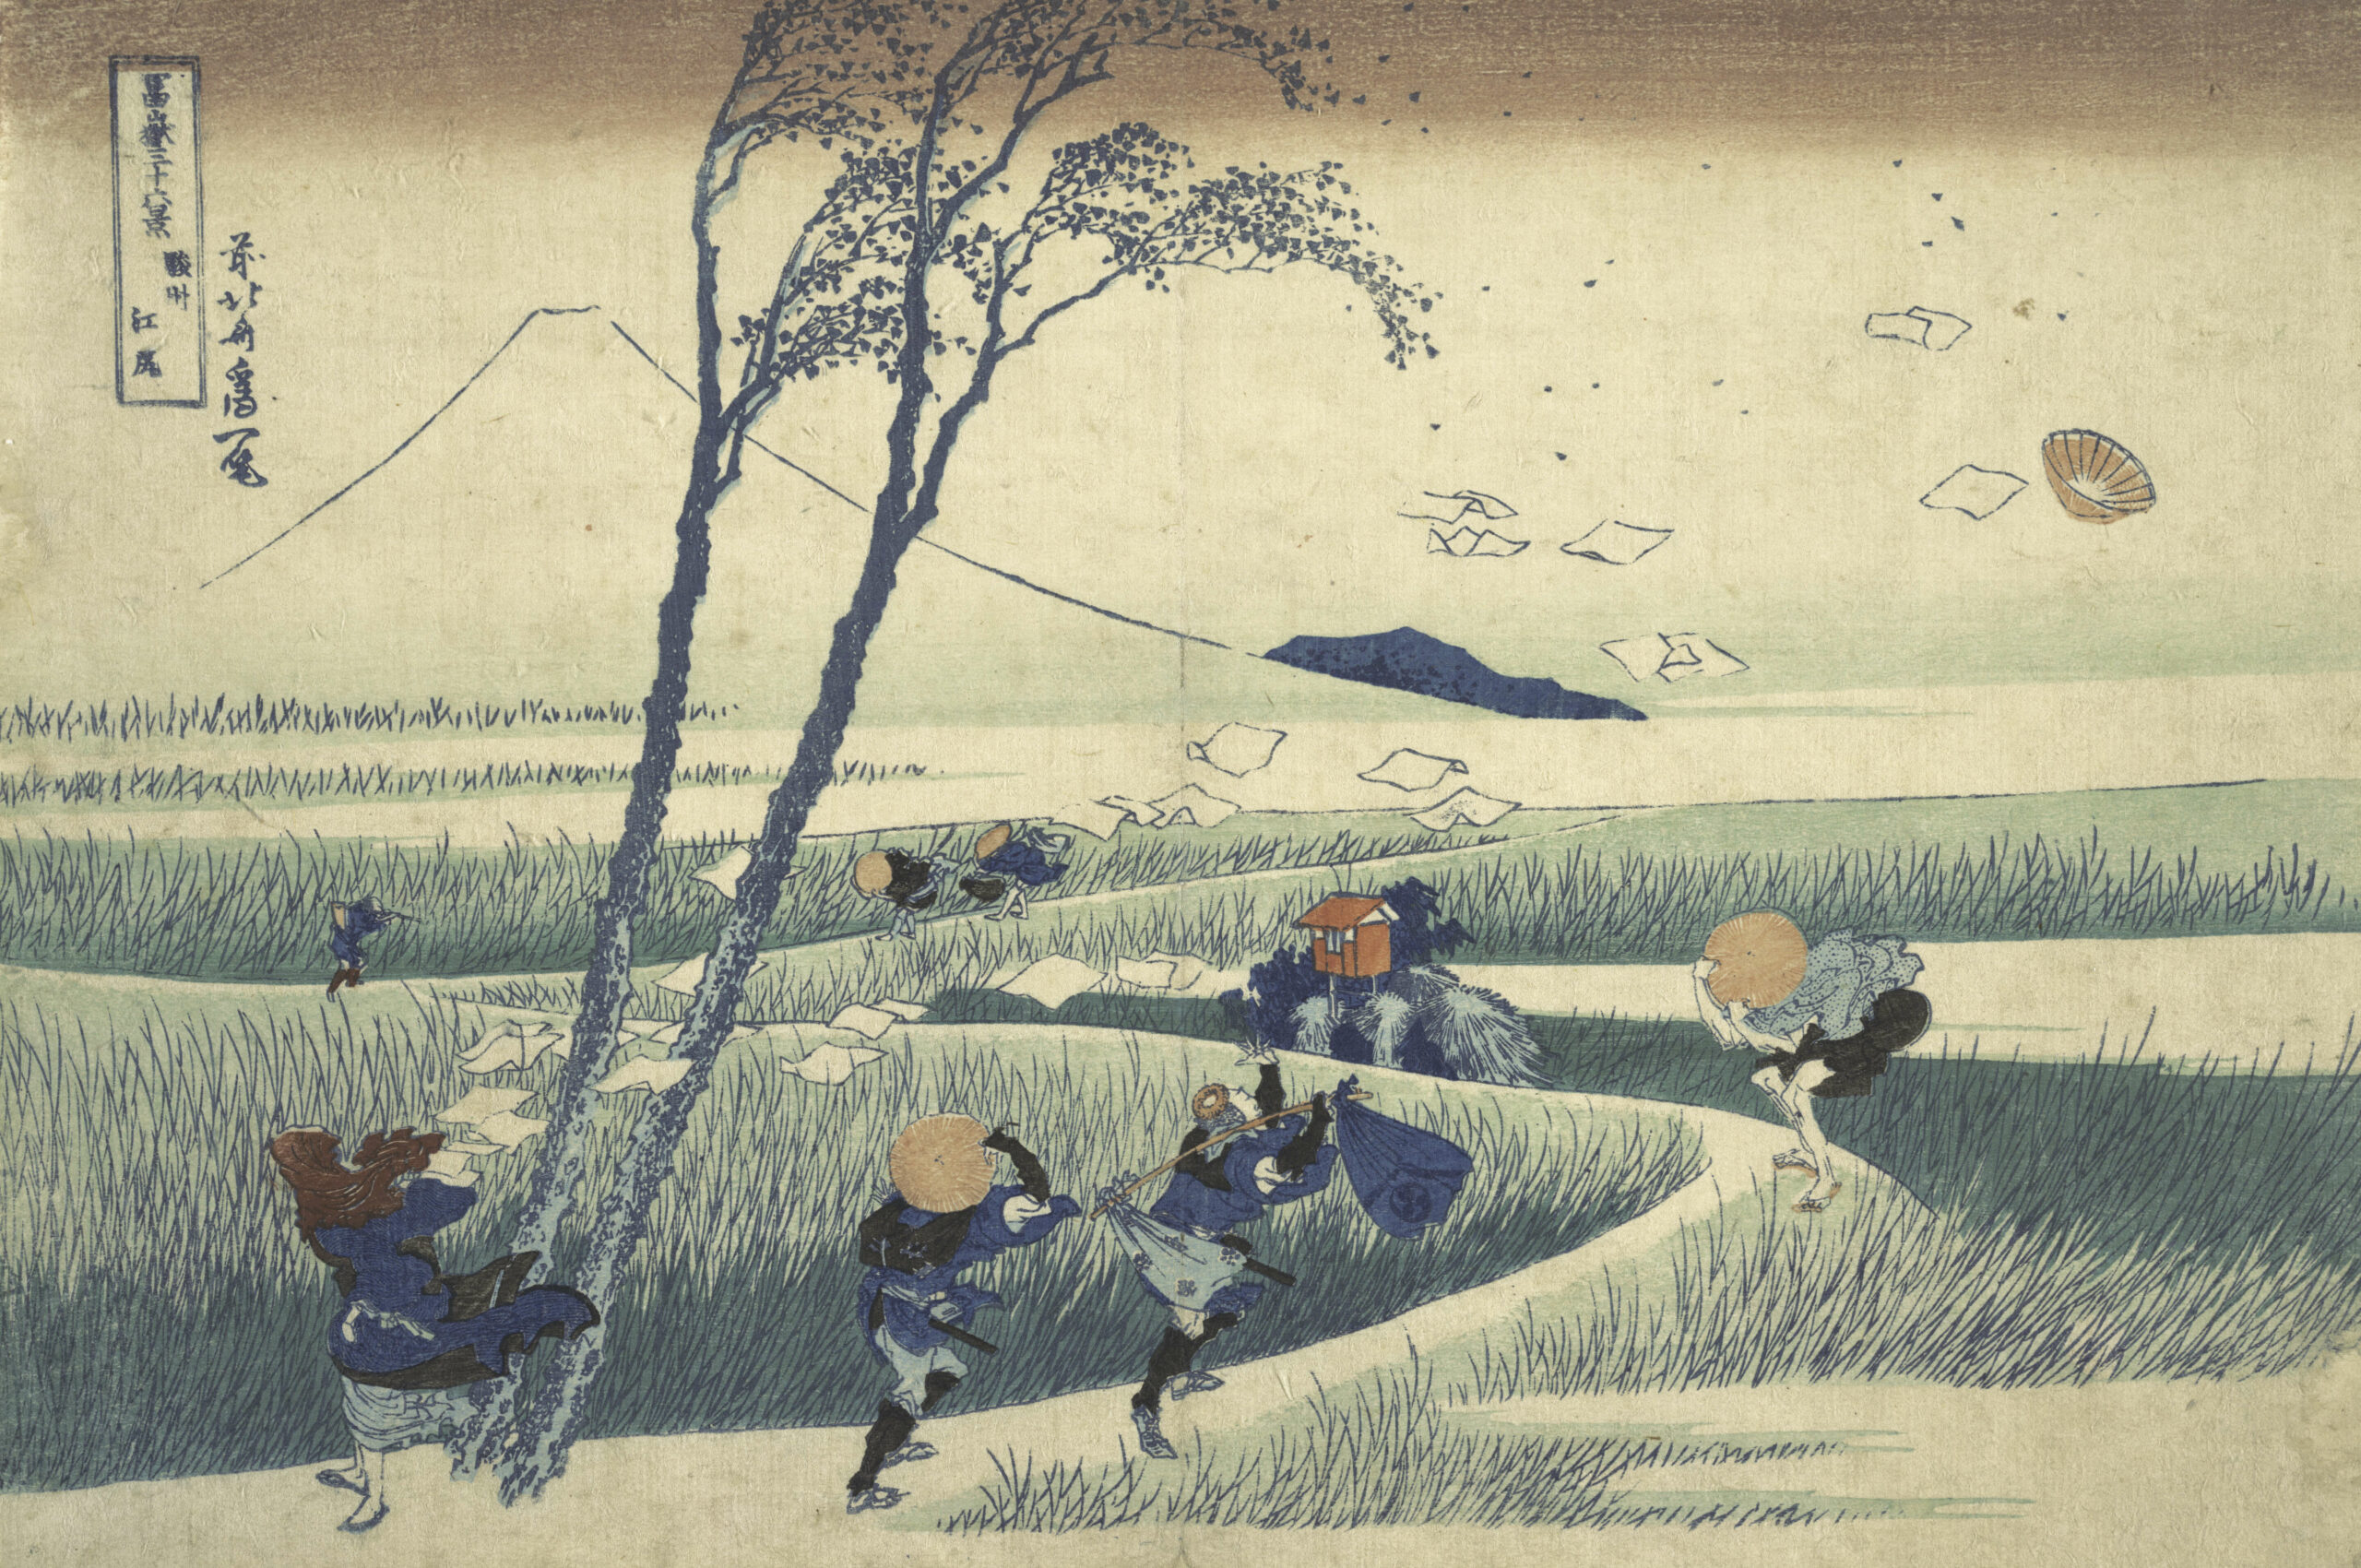 "Hokusai's woodblock print ""Ejiri in Suruga Province"", depicting people in Edo-era clothing bracing against strong wind, with one man losing his hat into the air"